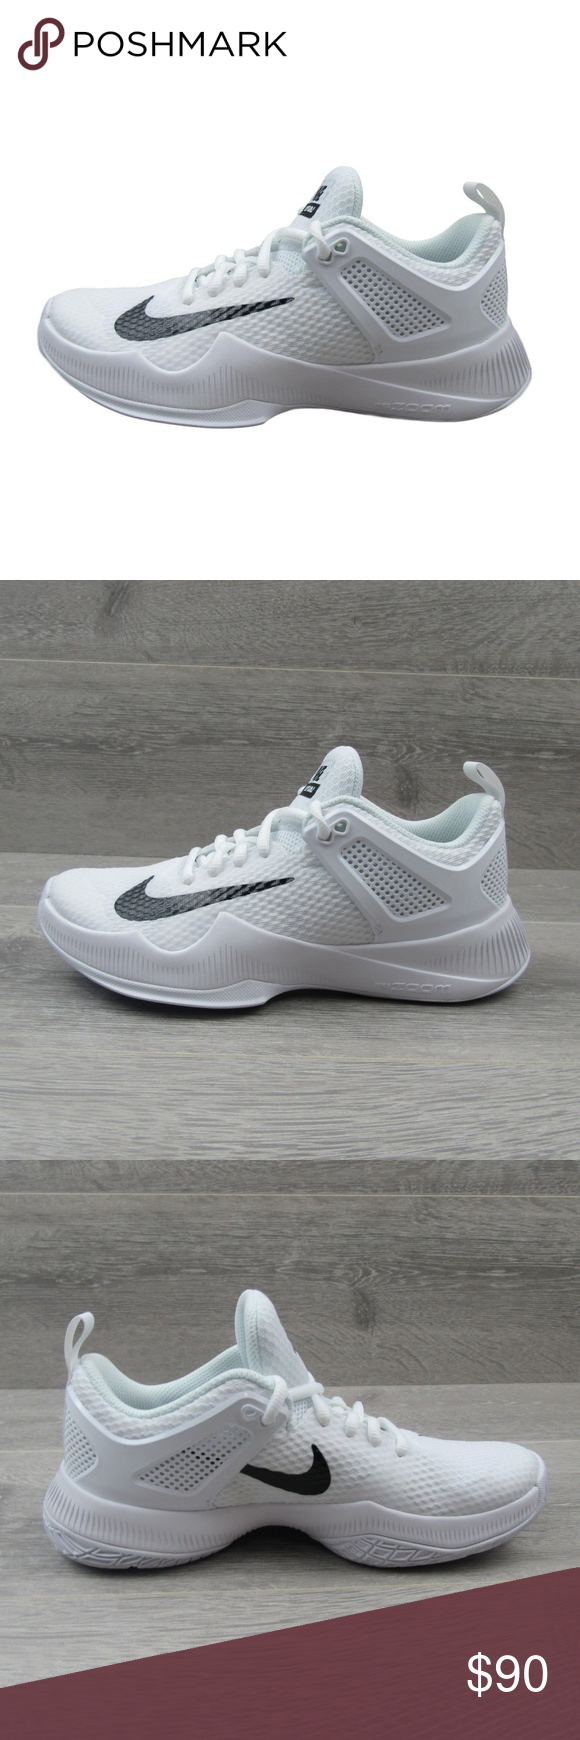 Nike Air Zoom Hyperace Volleyball Shoes Size 7 5 Price Firm Nike Air Zoom Hyperace Women S Volleyball Shoes White Volleyball Shoes Nike Air Zoom Shoes